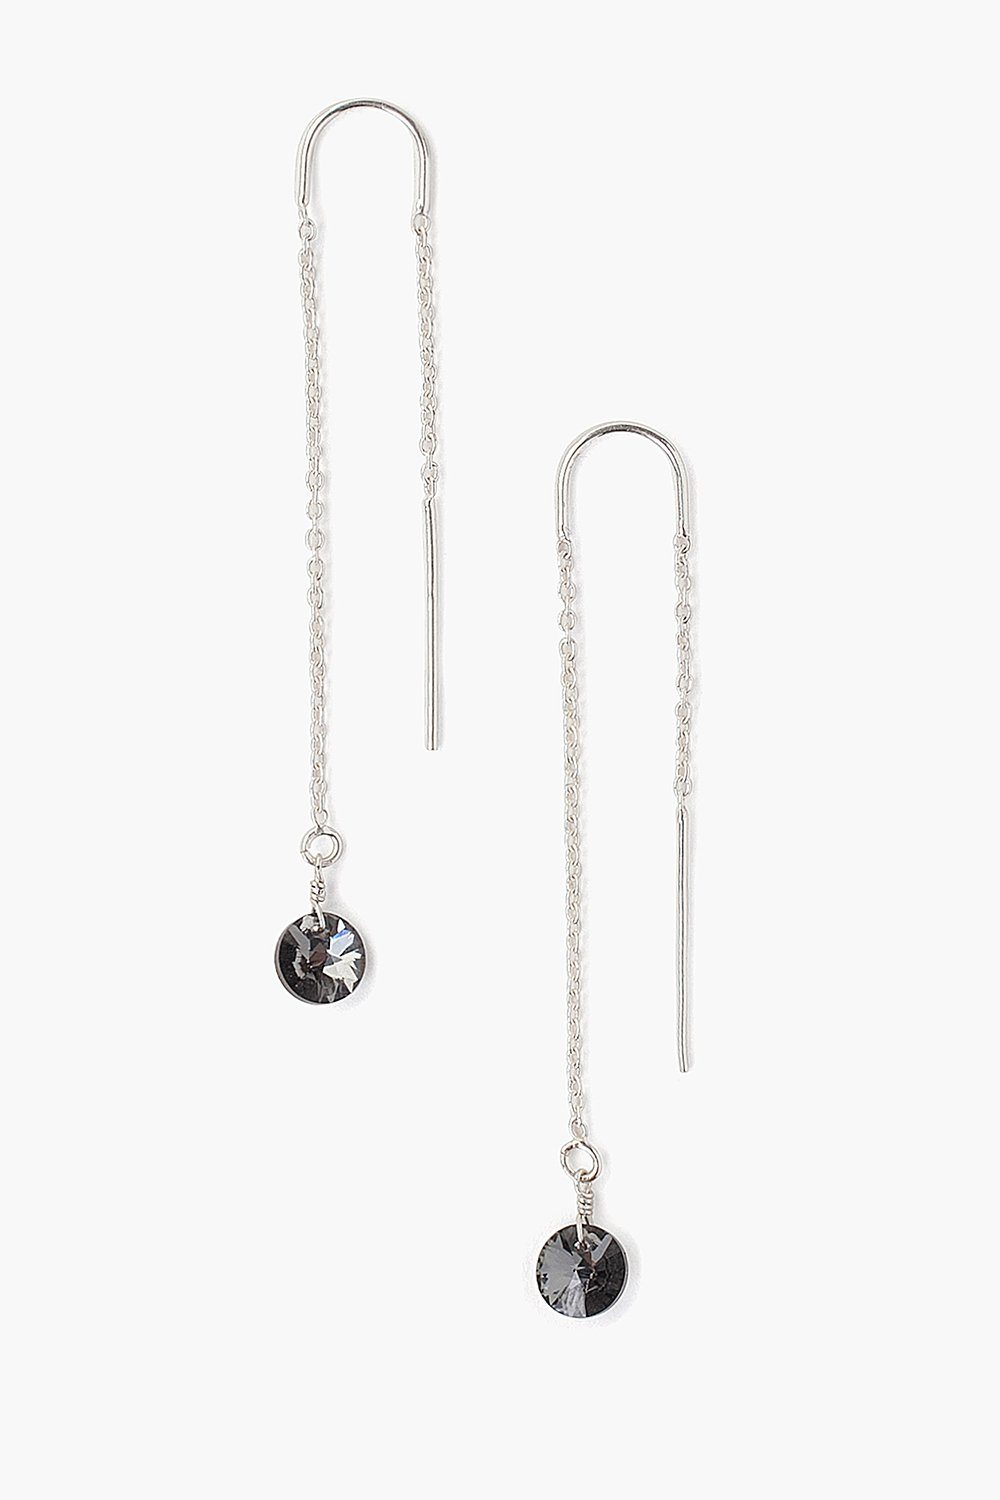 Silver Night Crystal Thread Thru Earrings